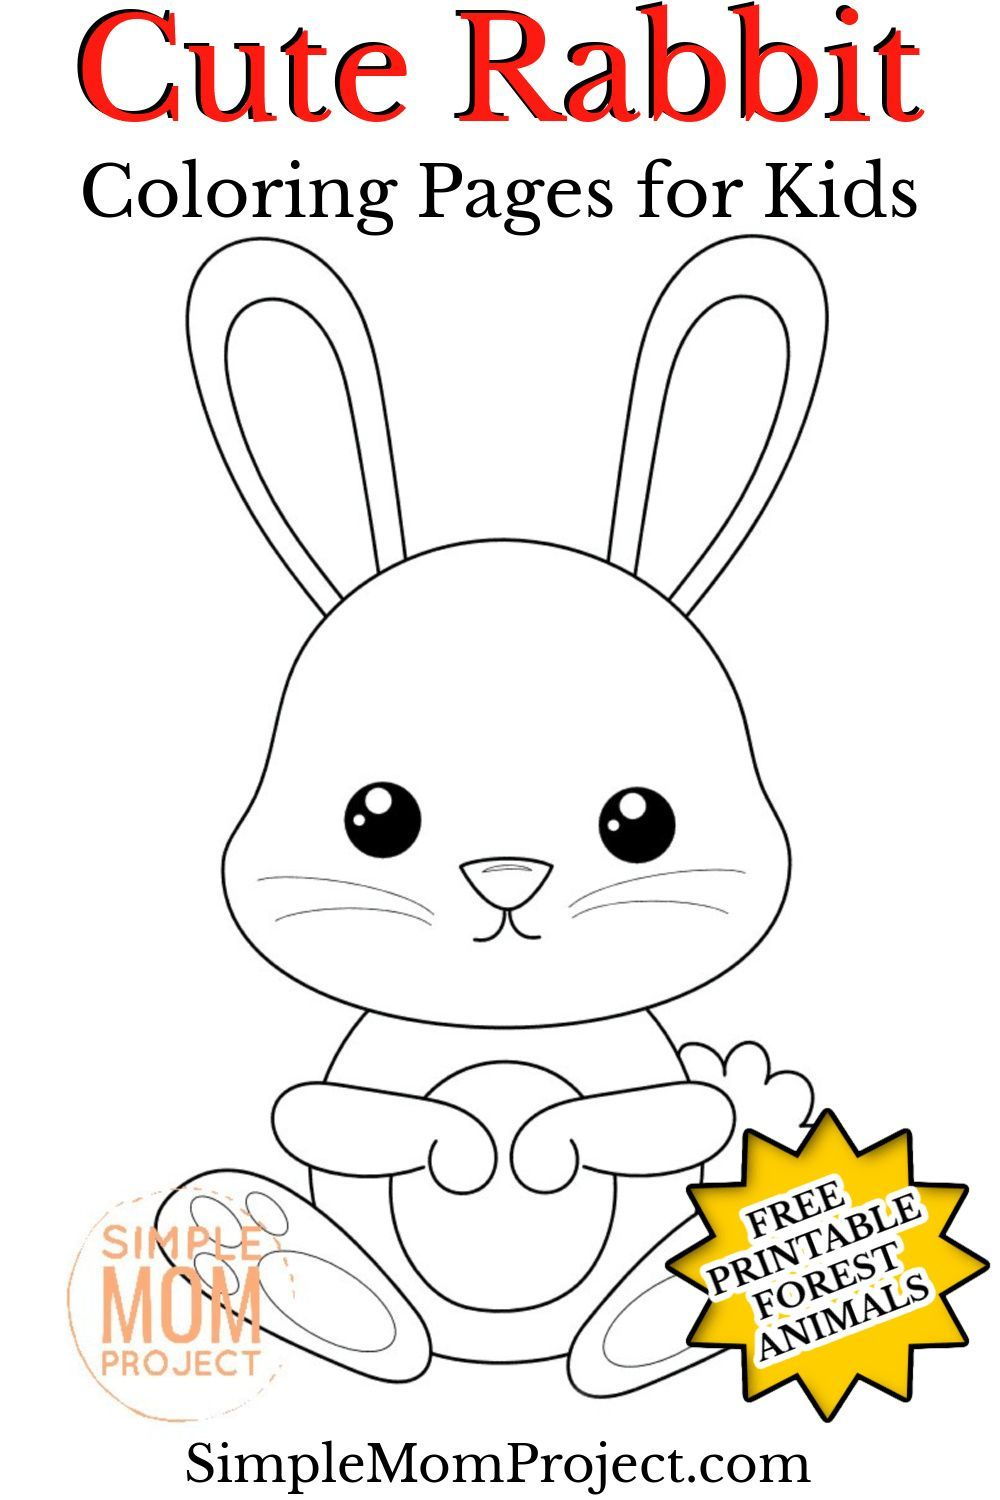 Free Printable Forest Rabbit Coloring Page In 2021 Preschool Coloring Pages Animal Crafts For Kids Toddler Coloring Book